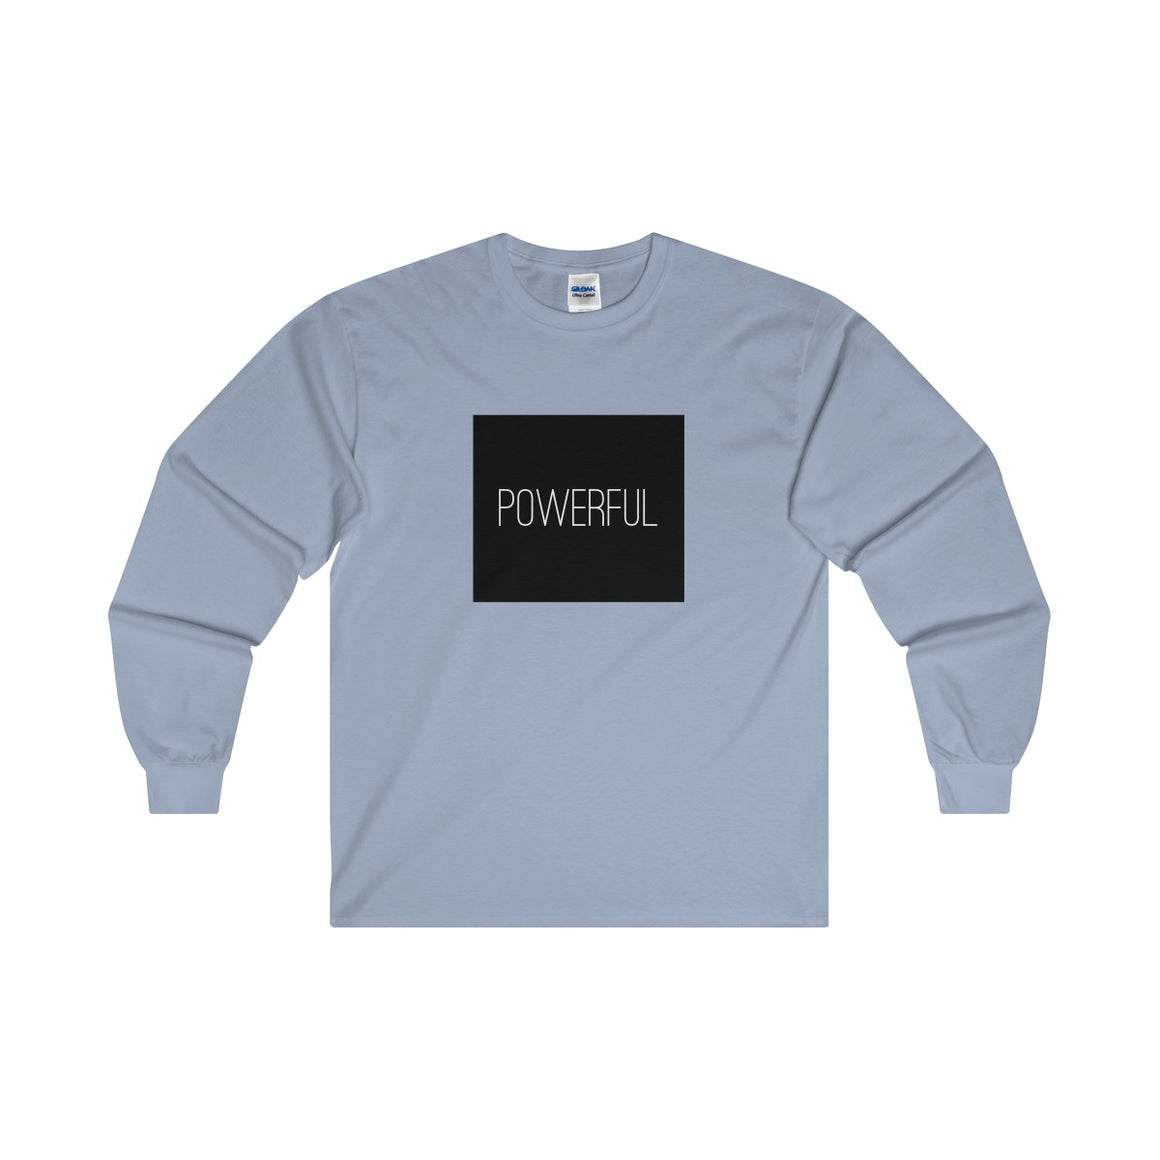 Powerful Long Sleeve Tee